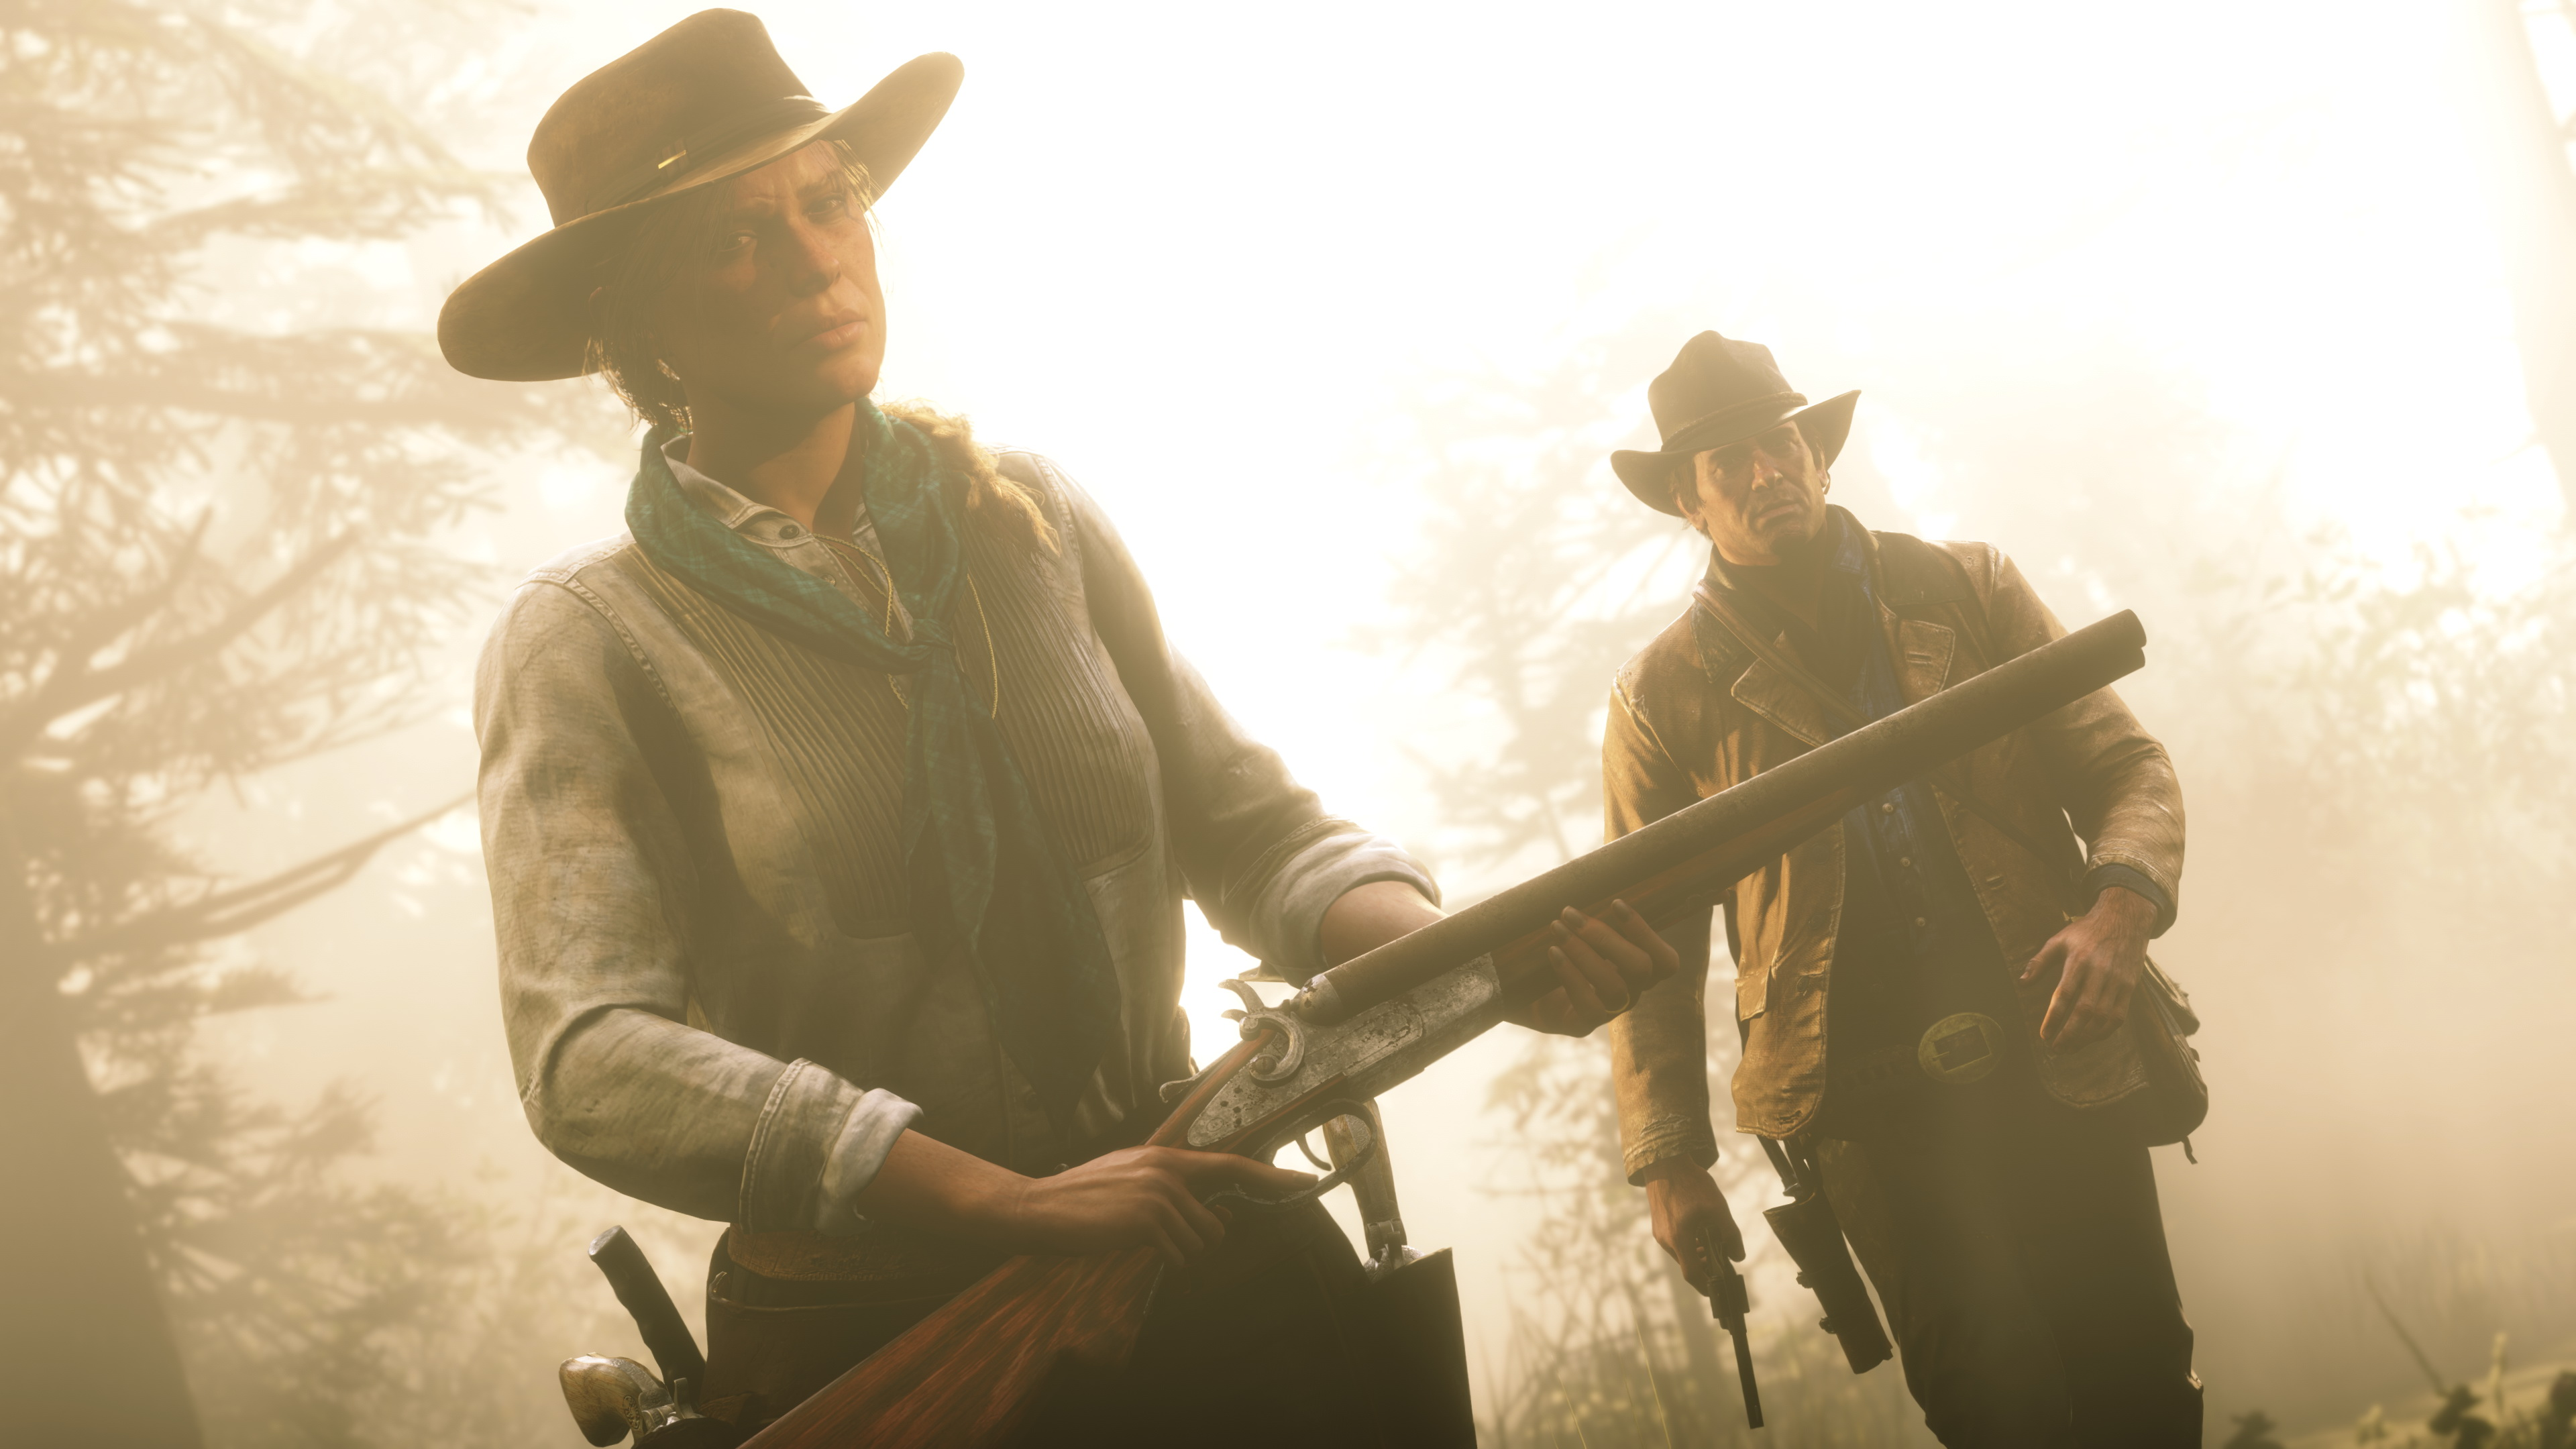 Even with a $1,200 graphics card, you still can't max out RDR2 on PC